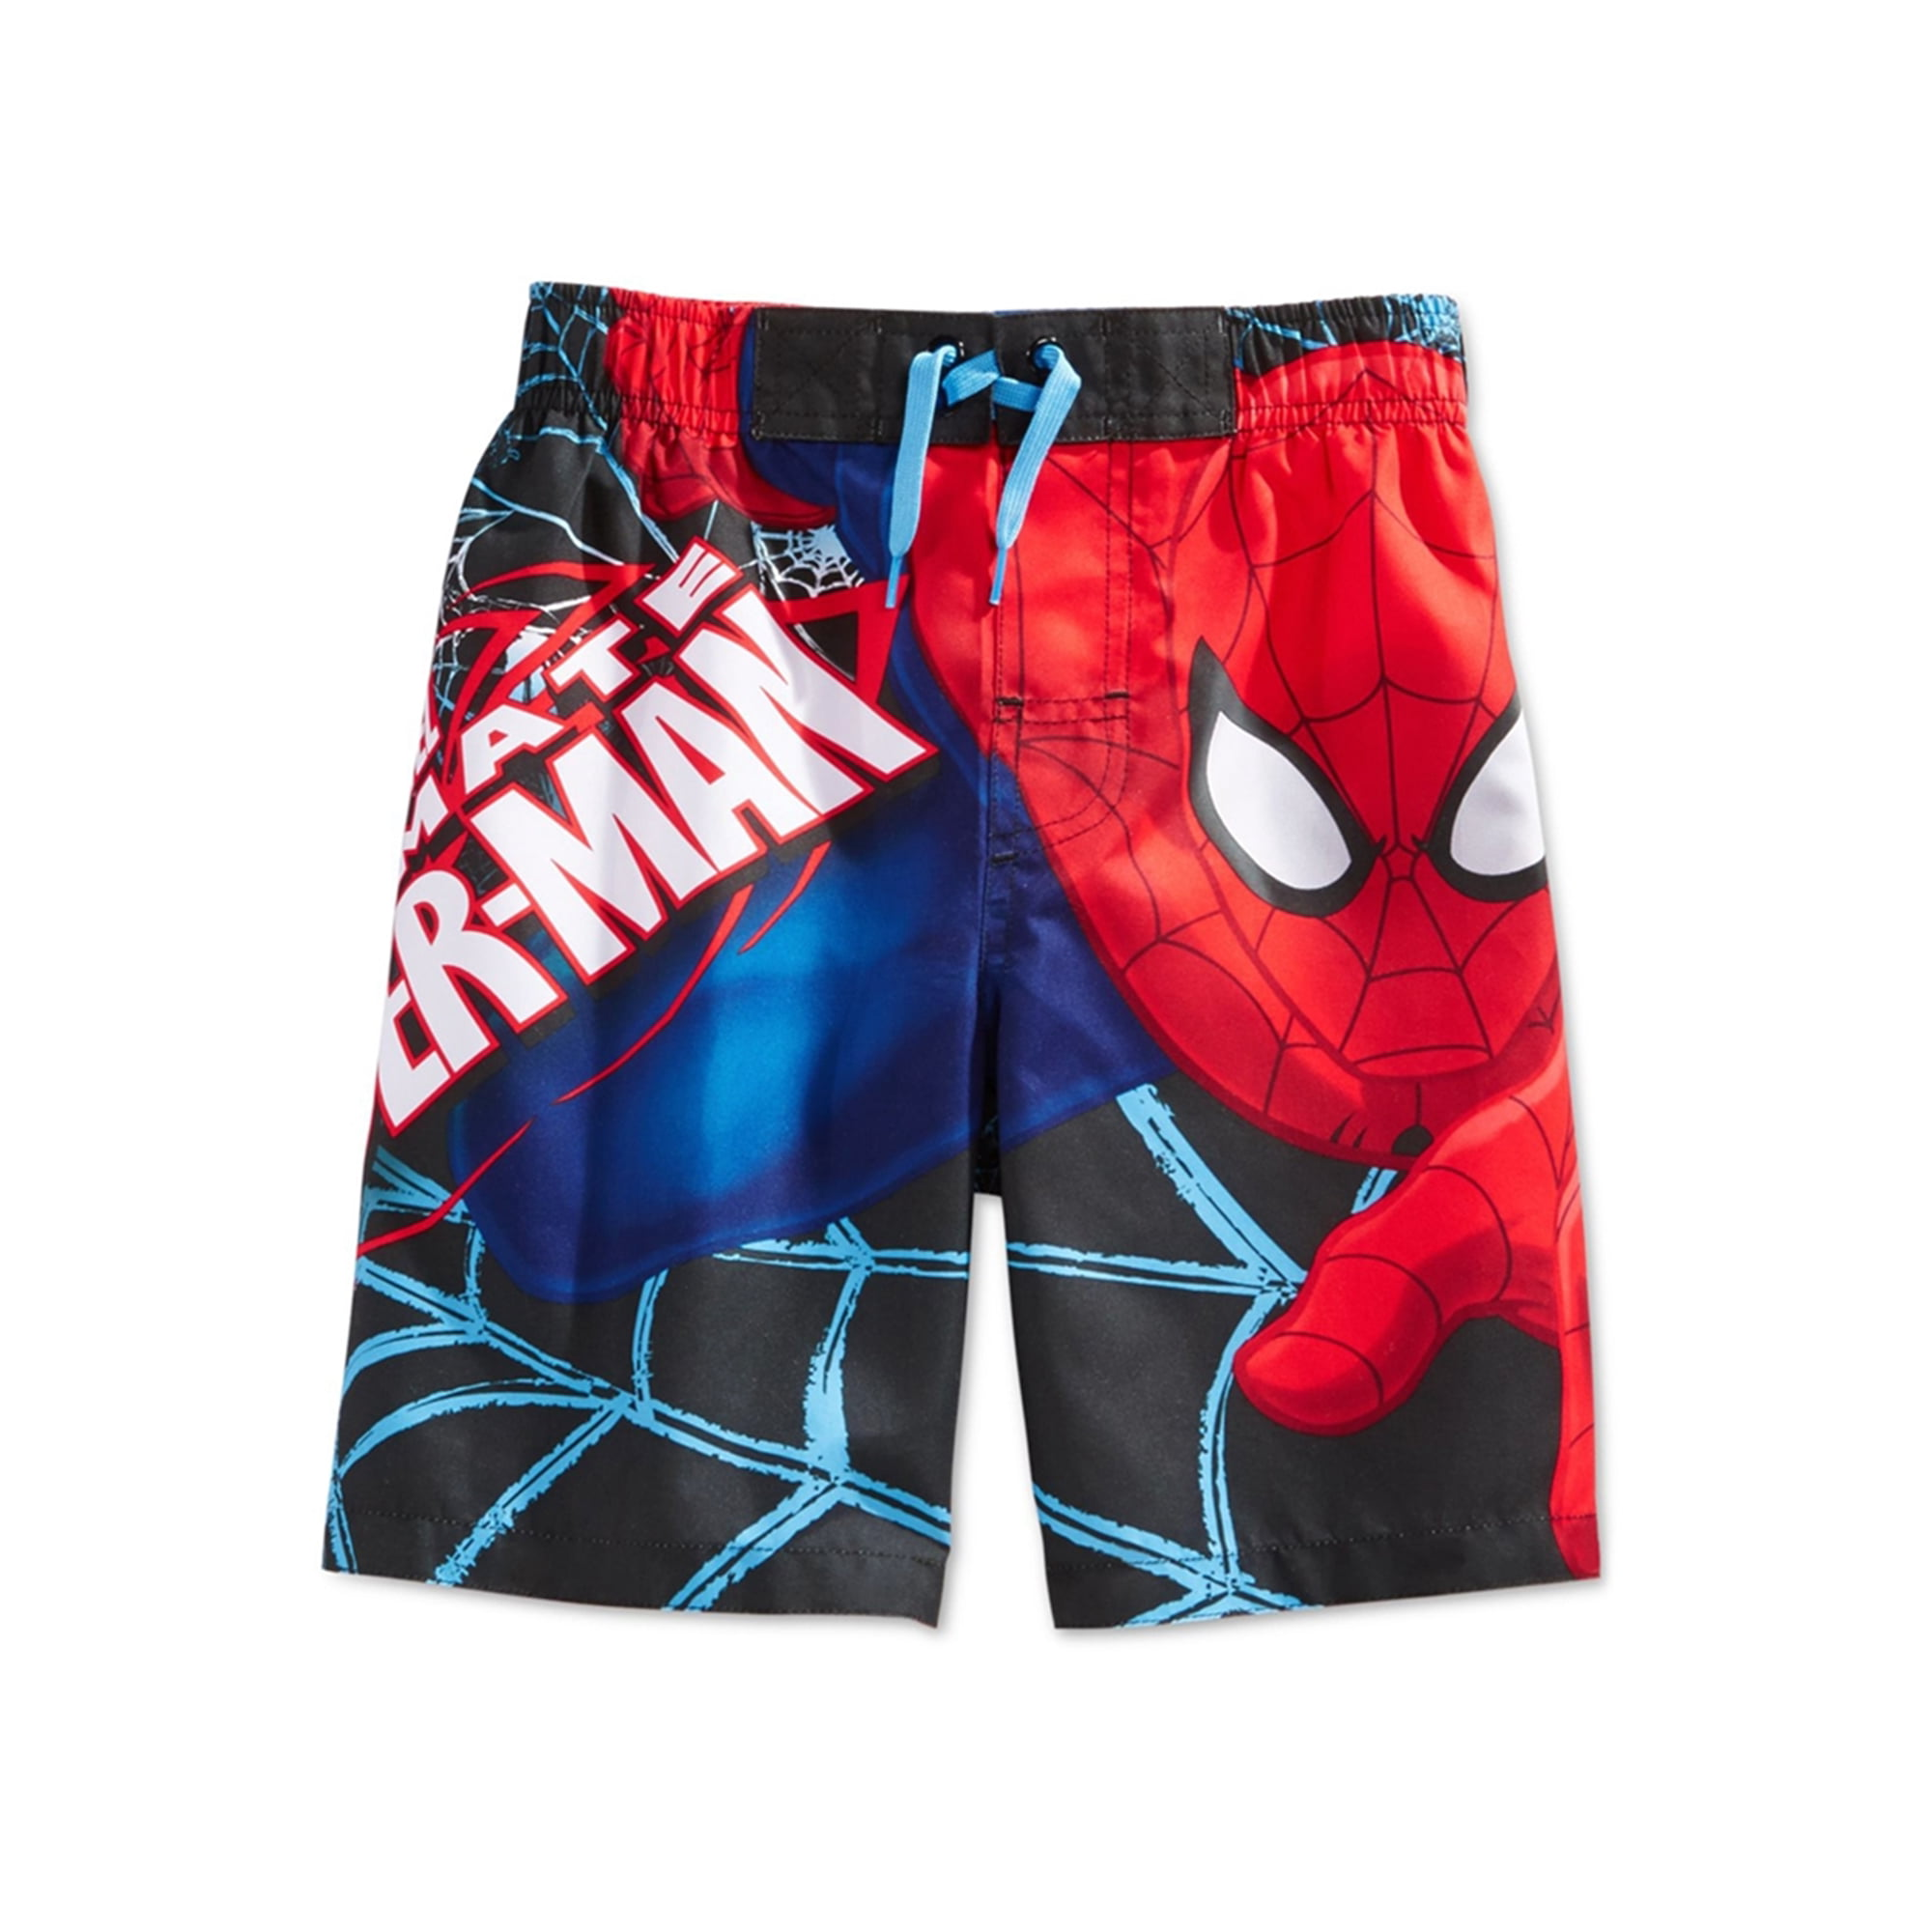 5ef81301641ac Marvel Comics Boys Spiderman Swim Bottom Trunks blue 4 - Little Kids (4-7)  | Walmart Canada